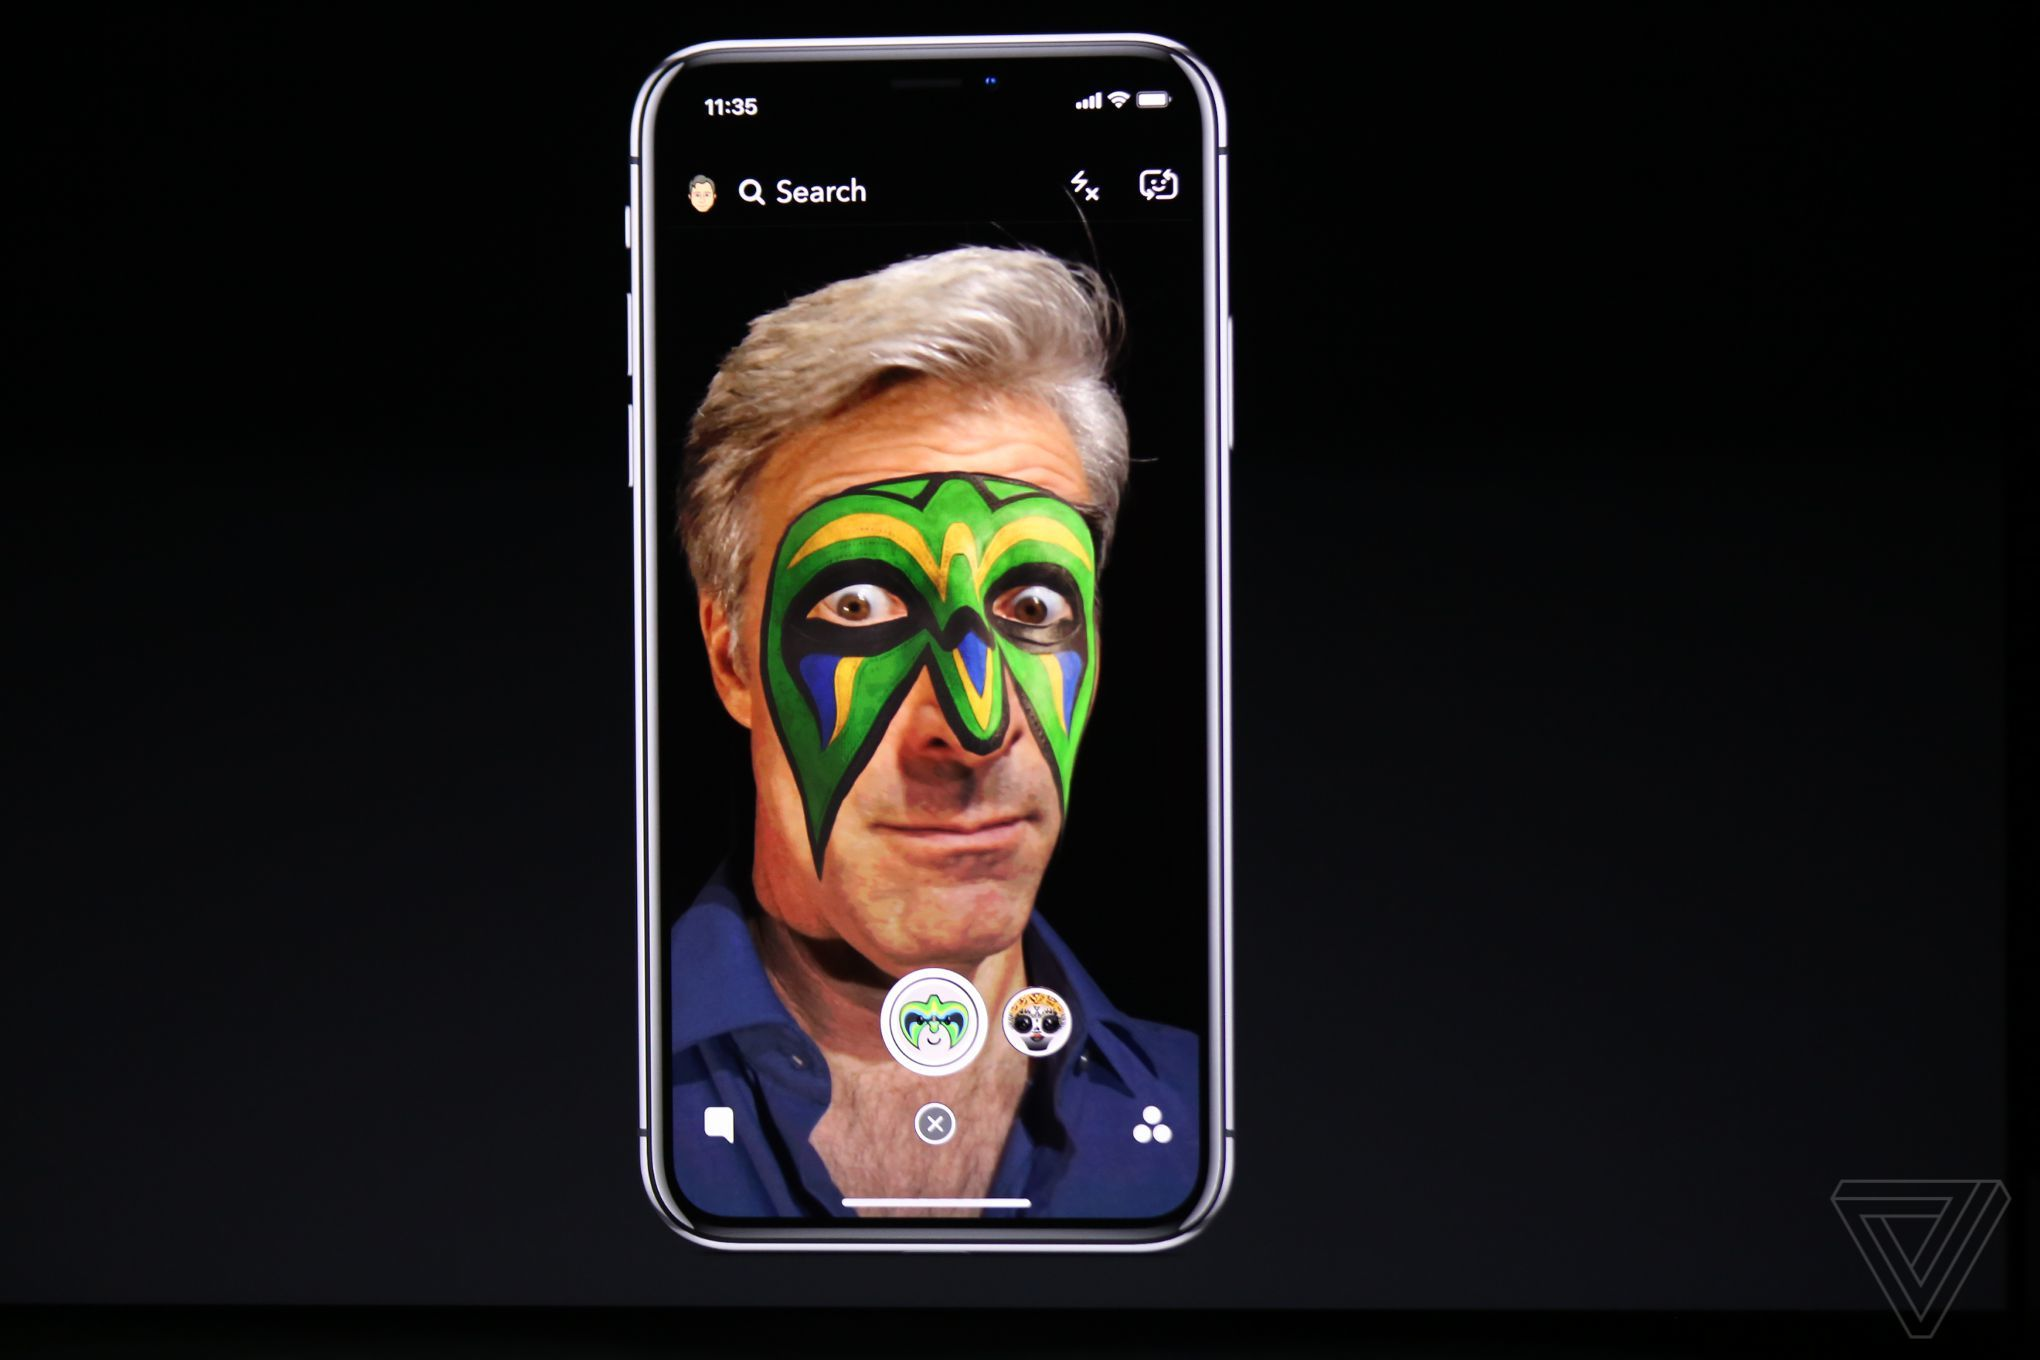 Iphone X Notch Wallpaper App Iphone X Announced With Edge To Edge Screen Face Id And